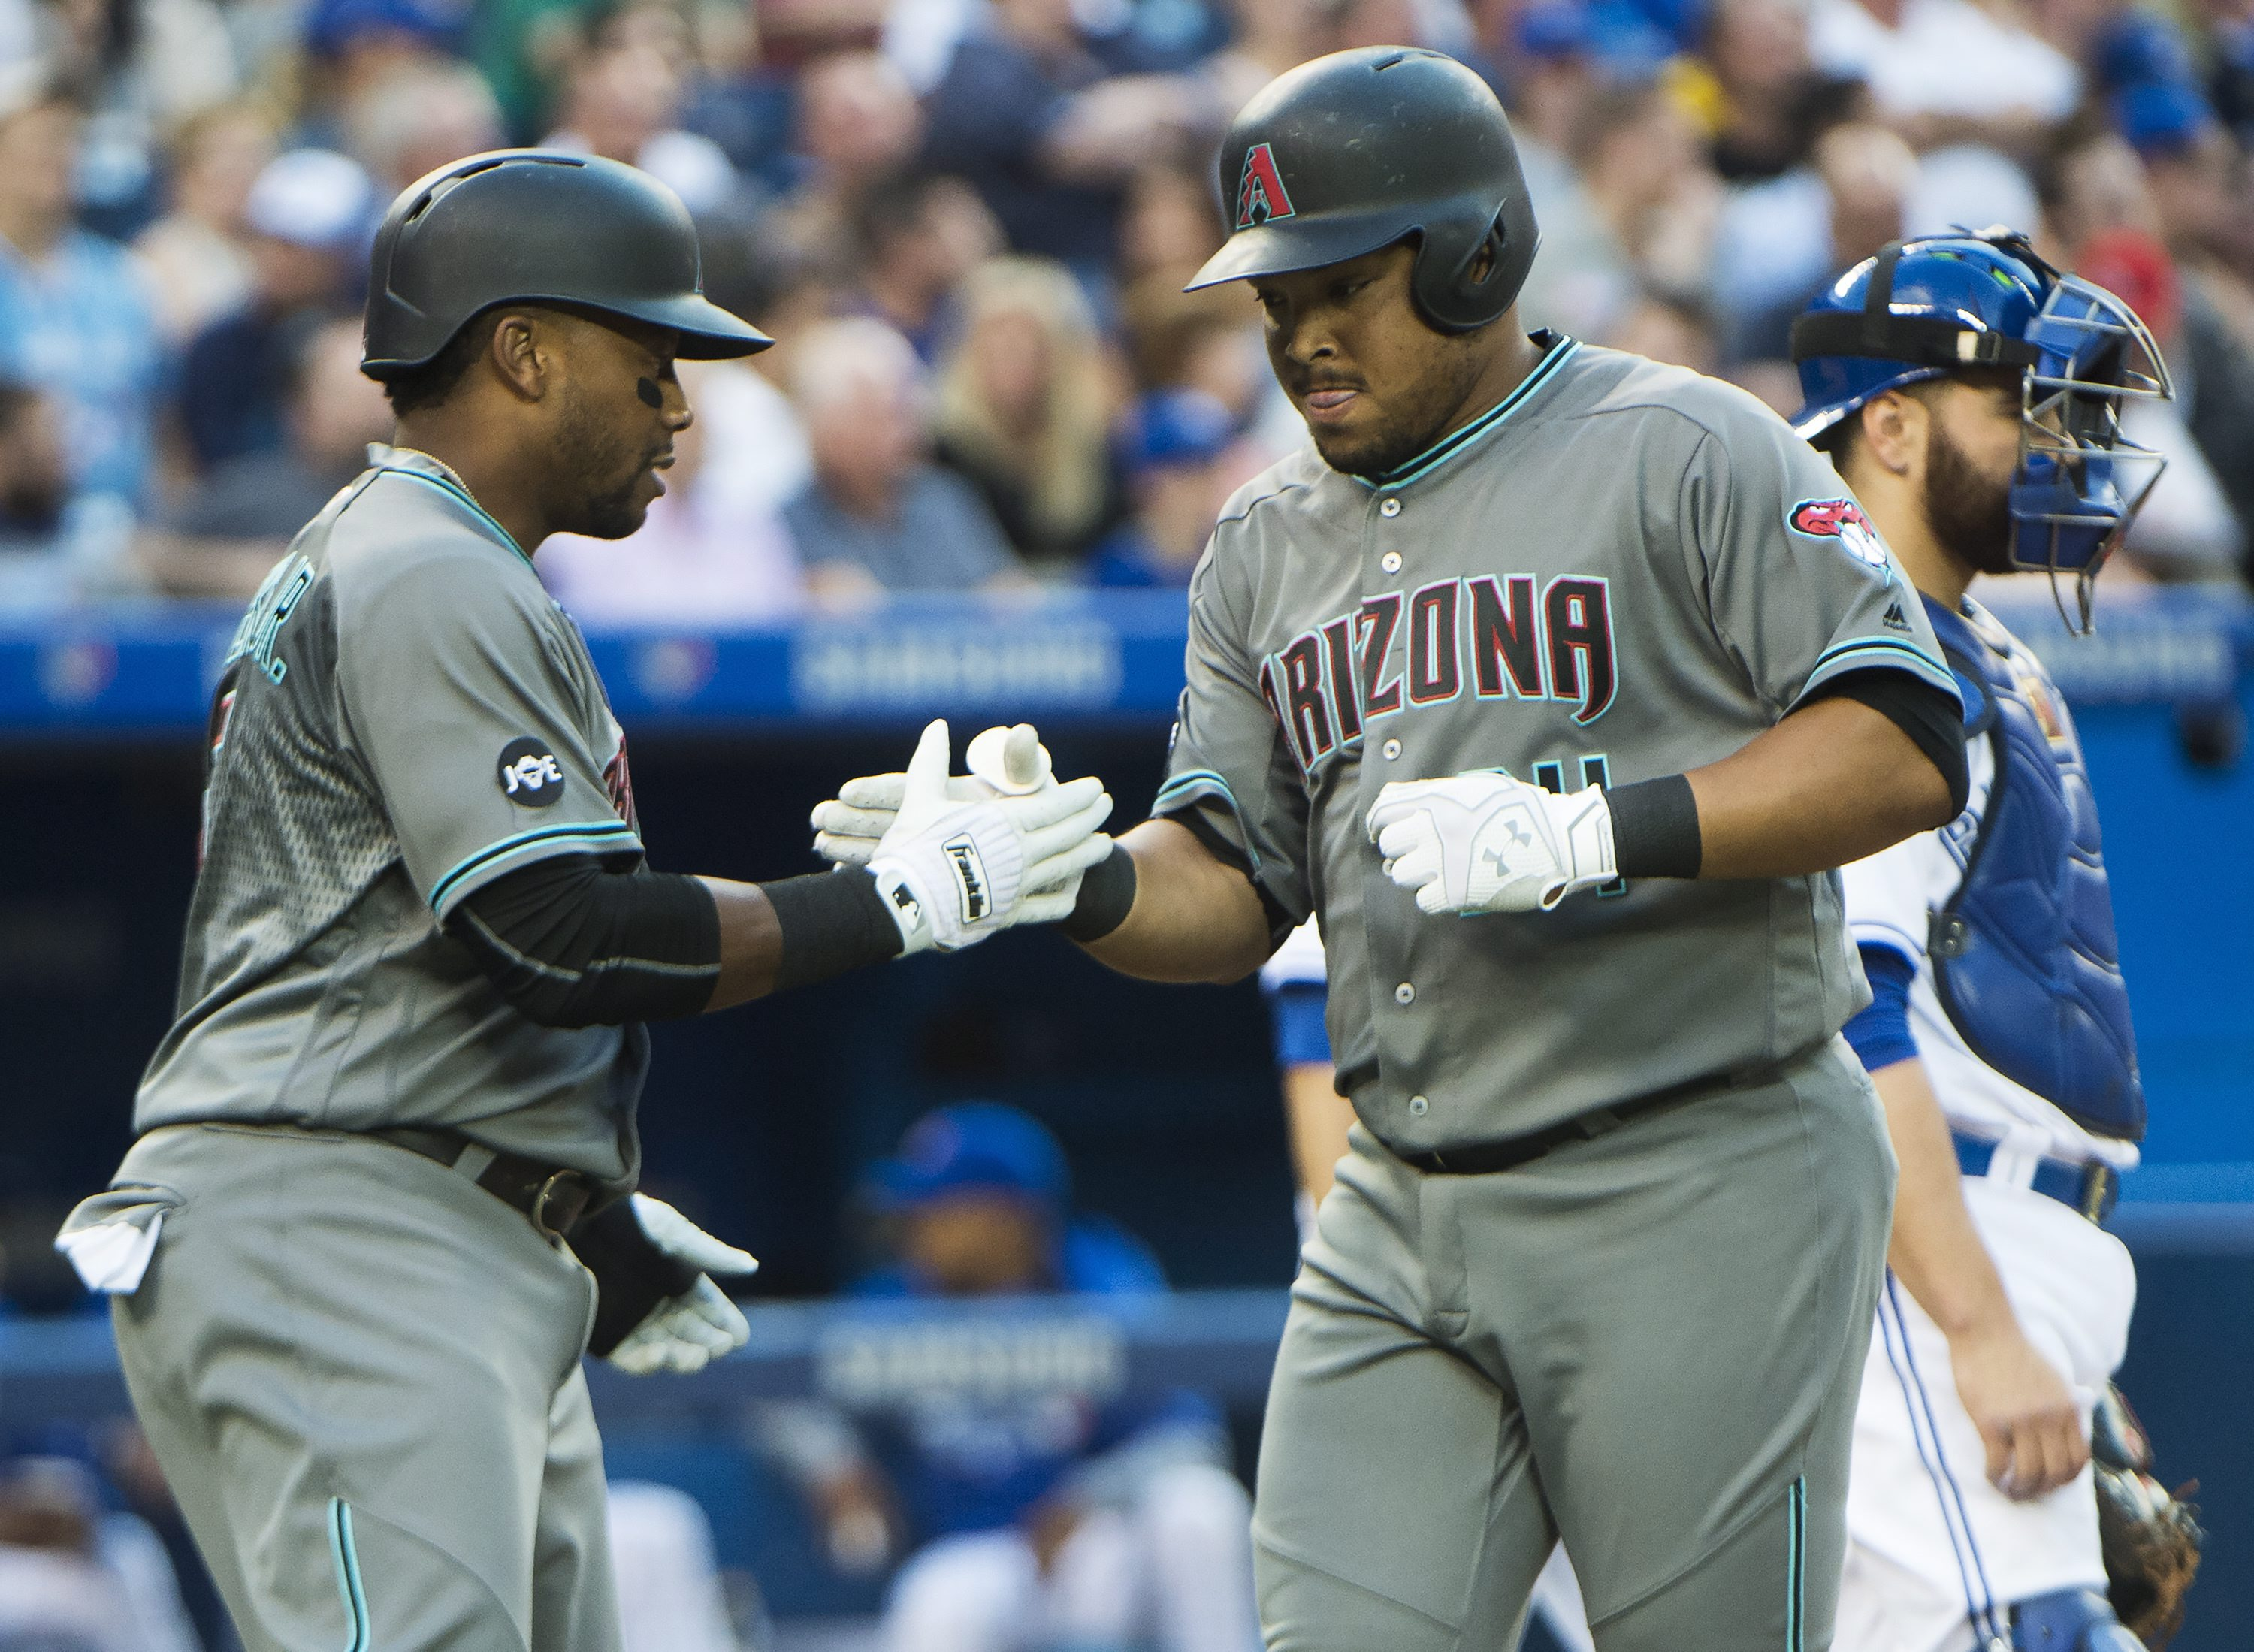 Arizona Diamondbacks left fielder Yasmany Tomas, right, celebrates his two run home run against the Toronto Blue Jays with teammate Rickie Weeks during the fourth inning of a baseball game, Tuesday, June 21, 2016, in Toronto. (Nathan Denette/The Canadian